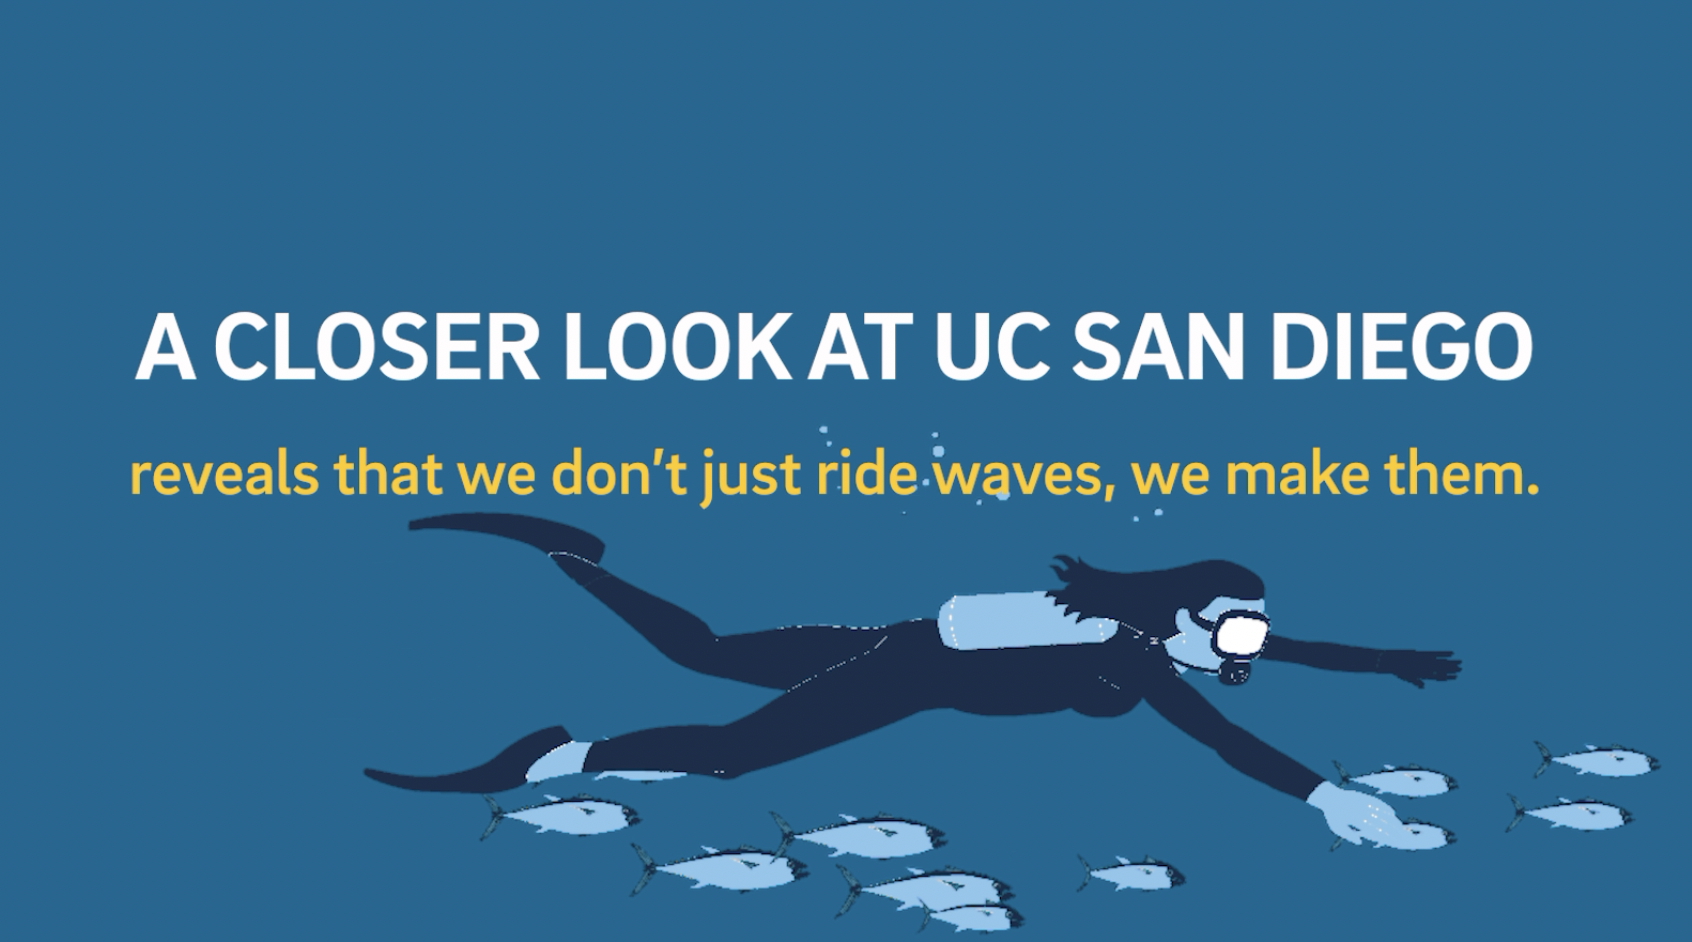 A closer look at UC San Diego reveals that we don't just ride wives, we make them.